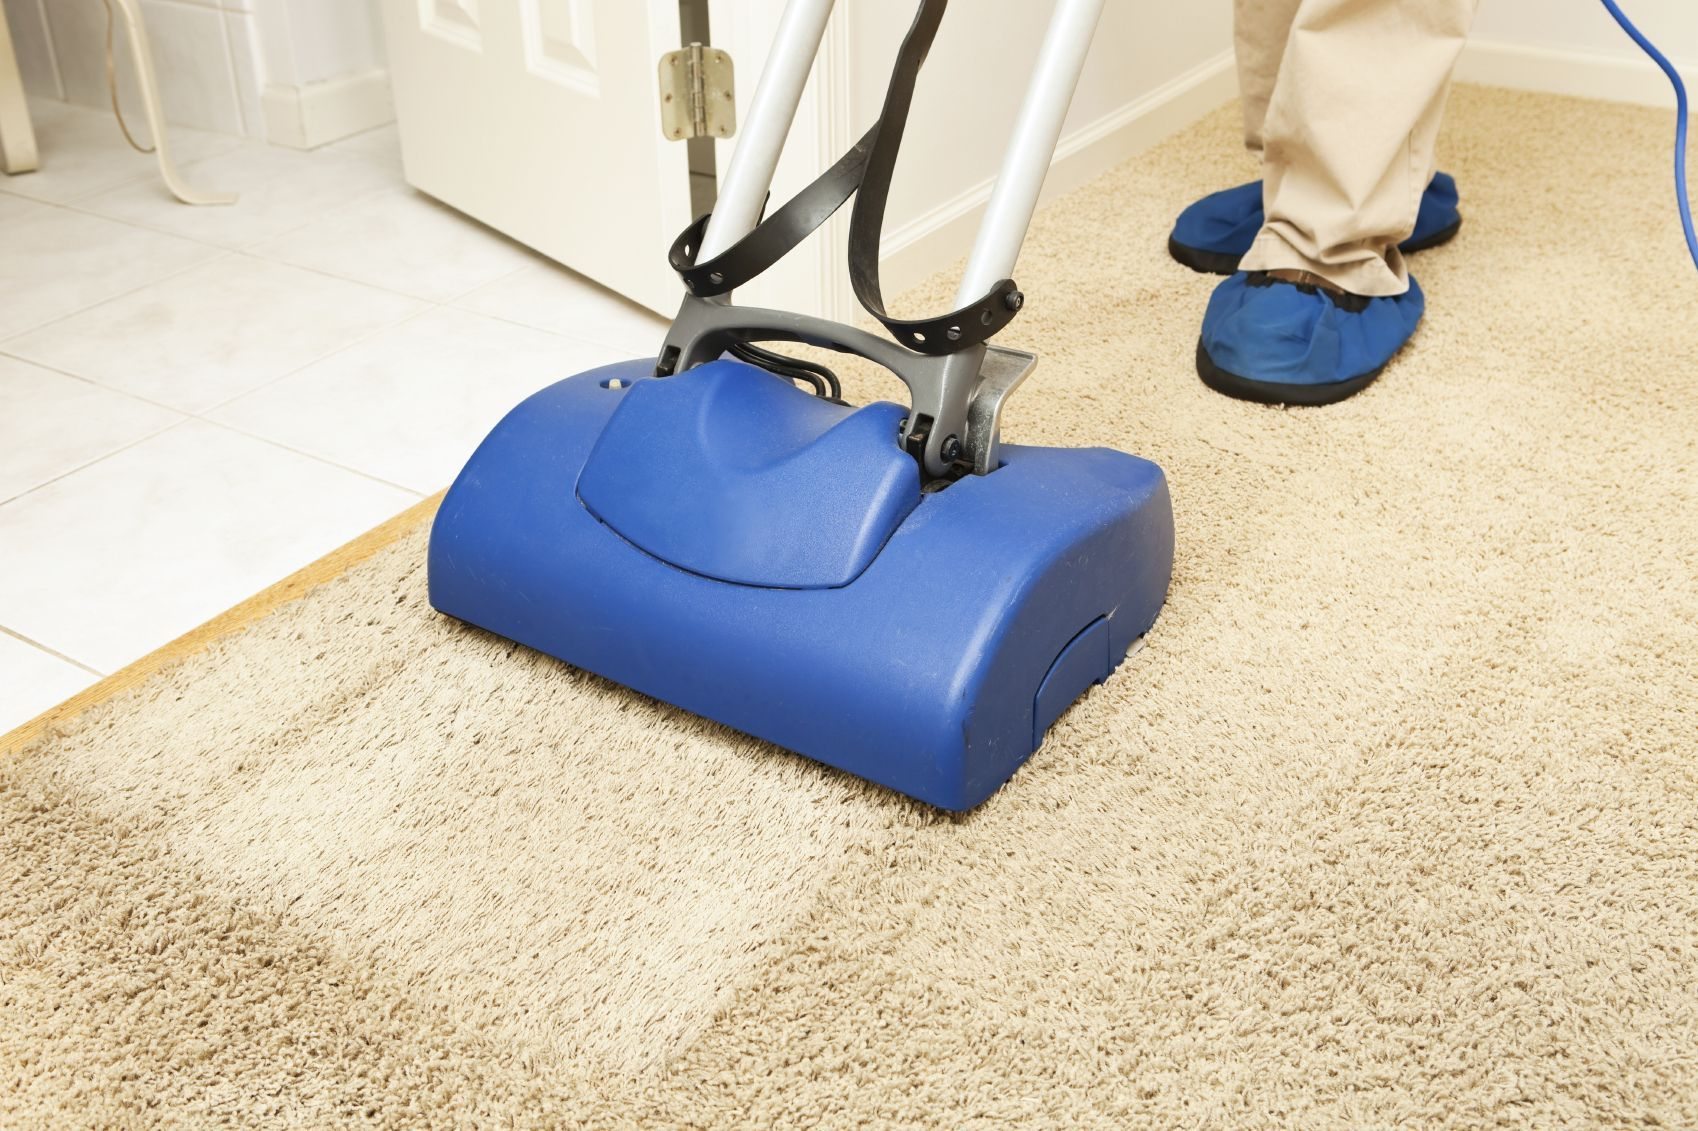 Pin on Carpet steam cleaning